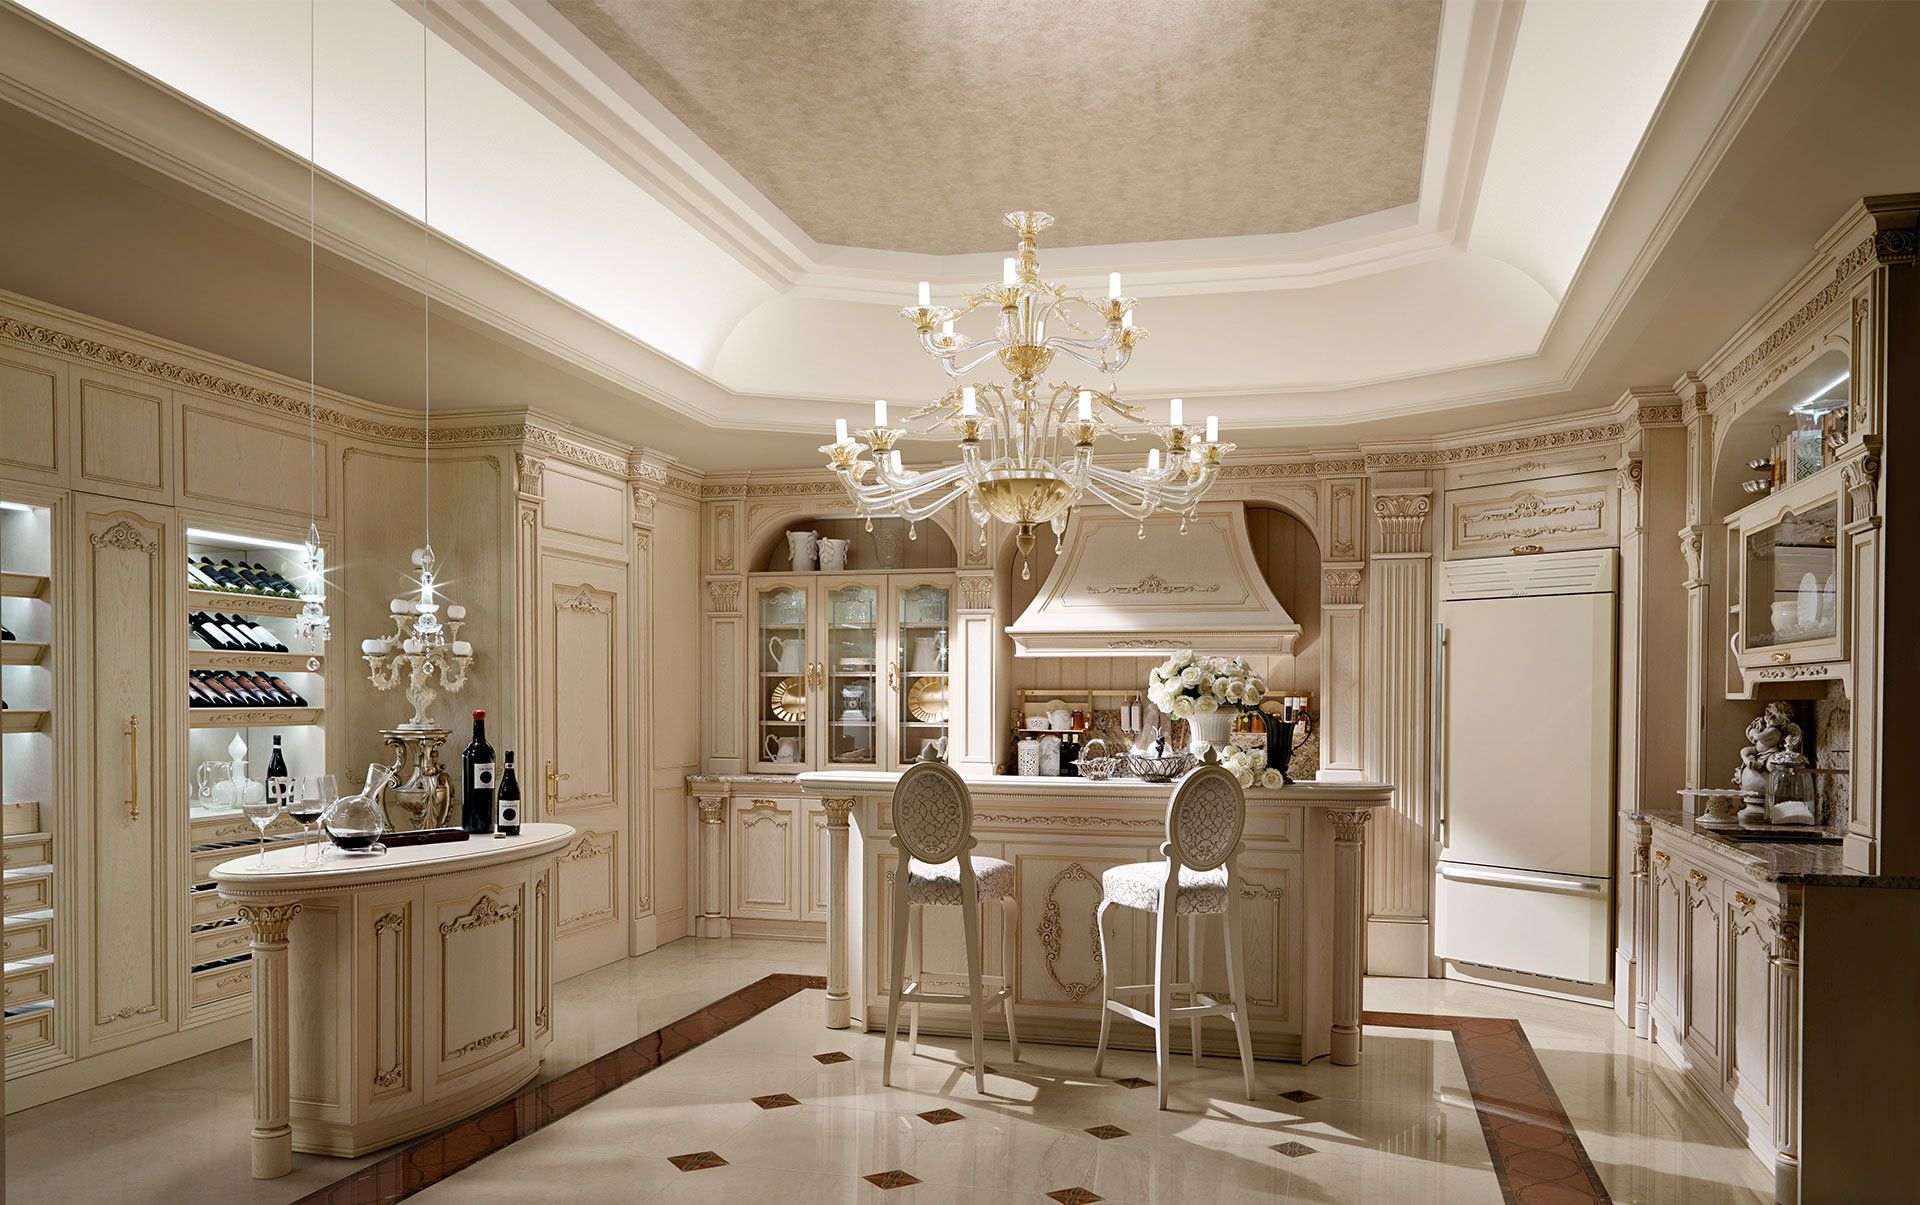 Classic Luxury Kitchen luxury italian custom made solid wood kitchen cabinets | exclusive